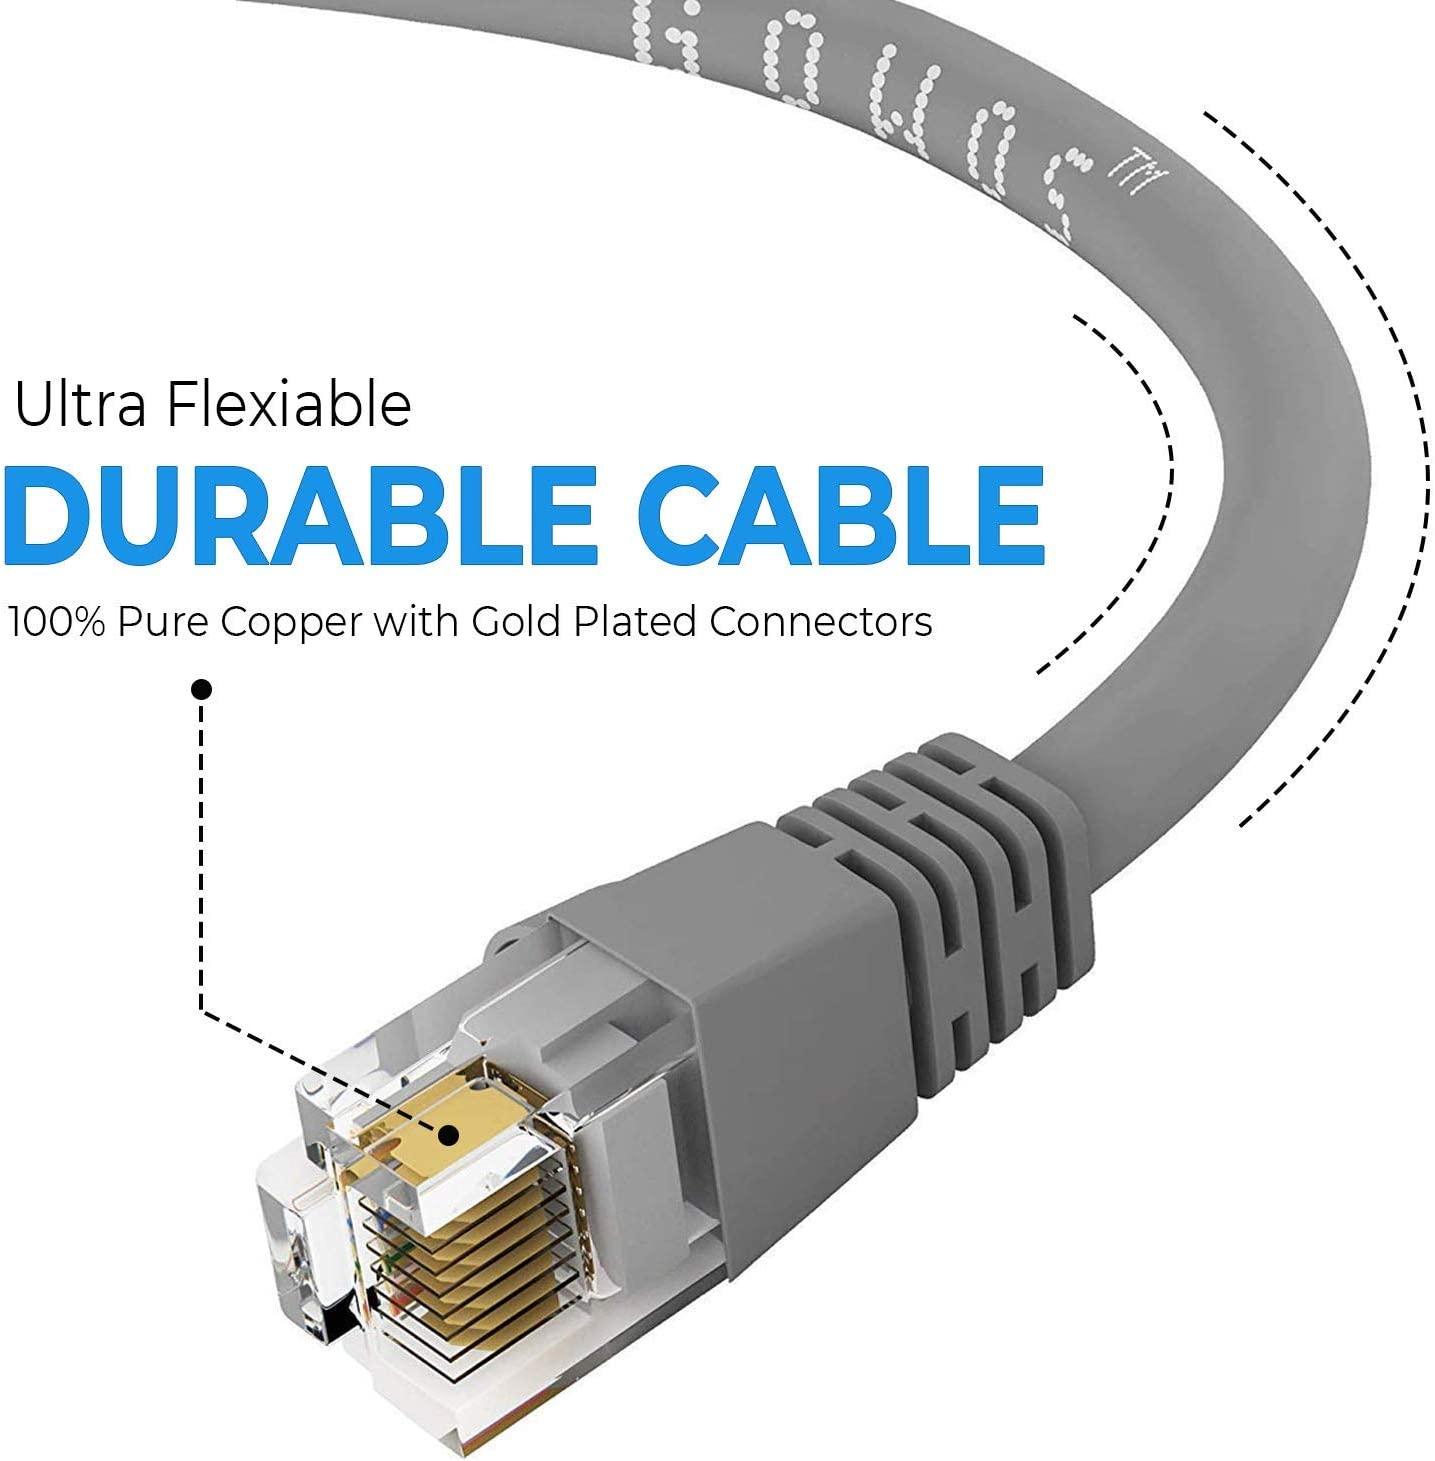 GOWOS 50-Pack Computer Network Cable with Snagless Connector UTP Available in 28 Lengths and 10 Colors 2 Feet - Yellow Cat5e Ethernet Cable RJ45 10Gbps High Speed LAN Internet Patch Cord